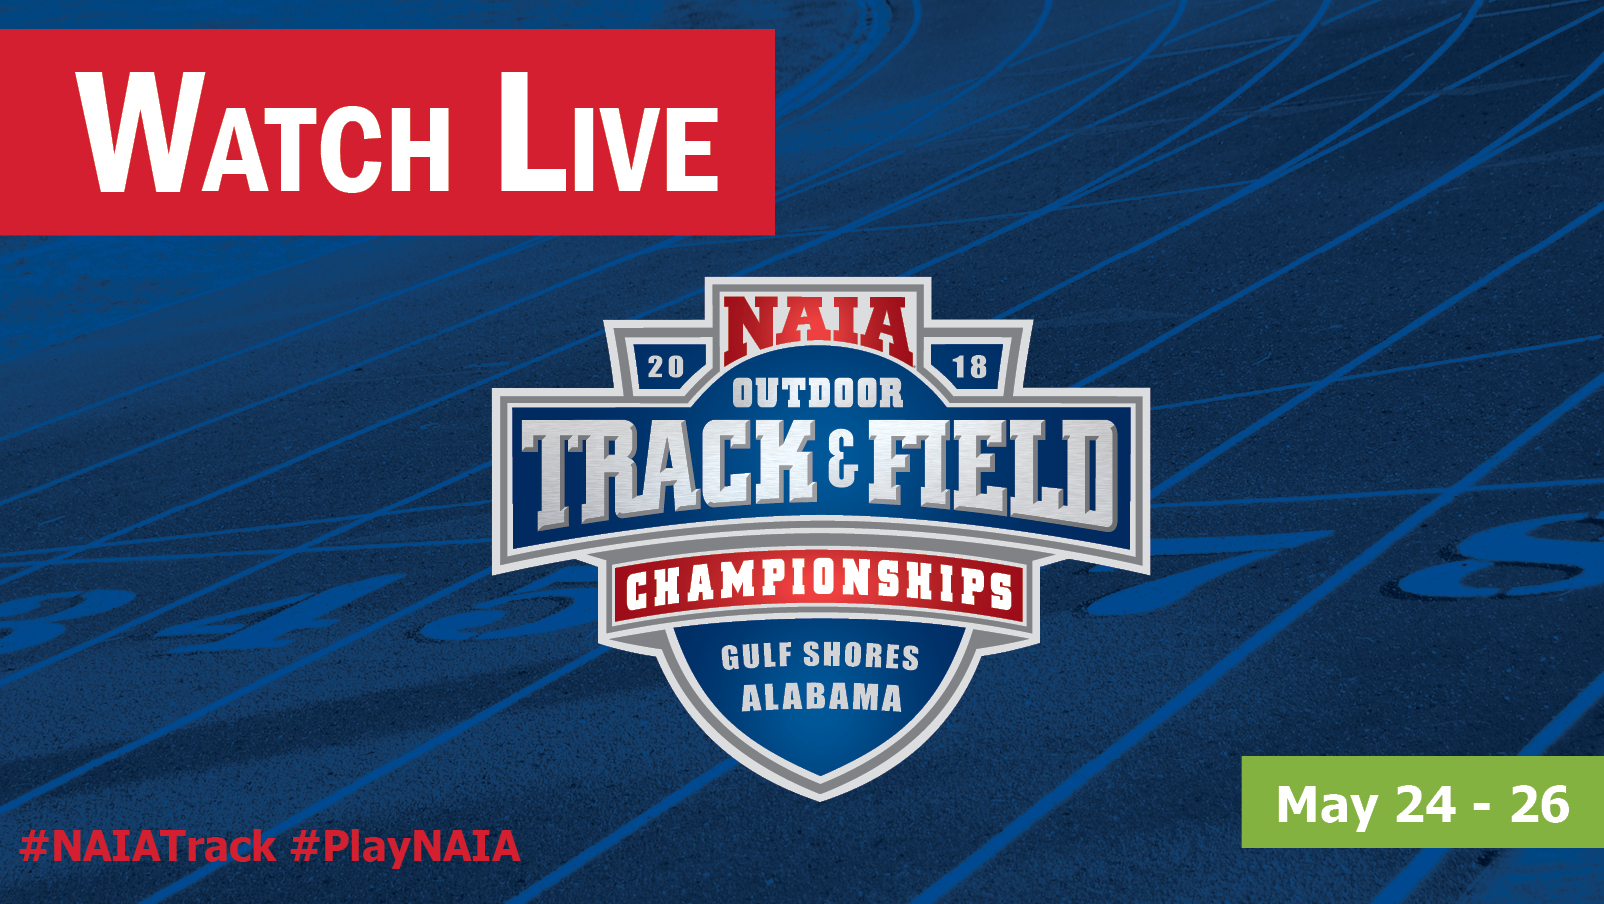 Outdoor Track & Field Championships